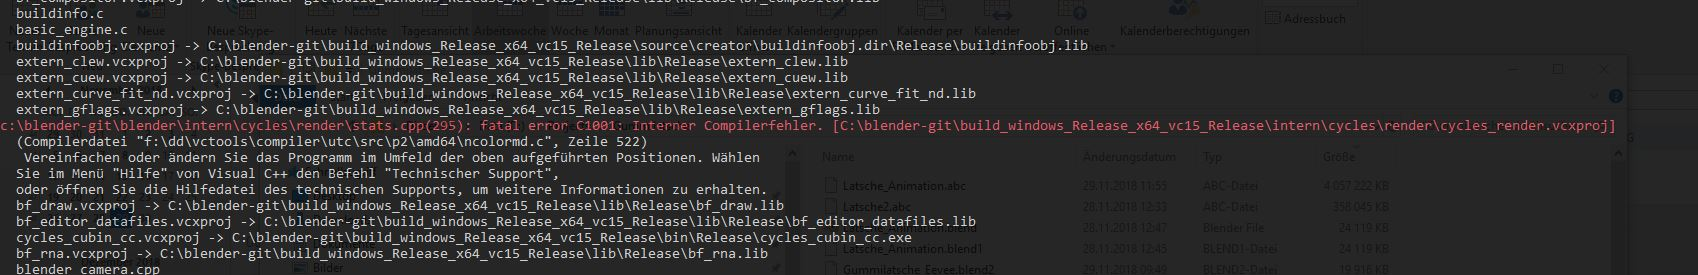 Compiling on Windows 10 fails in cycles_render vcxproj - Building